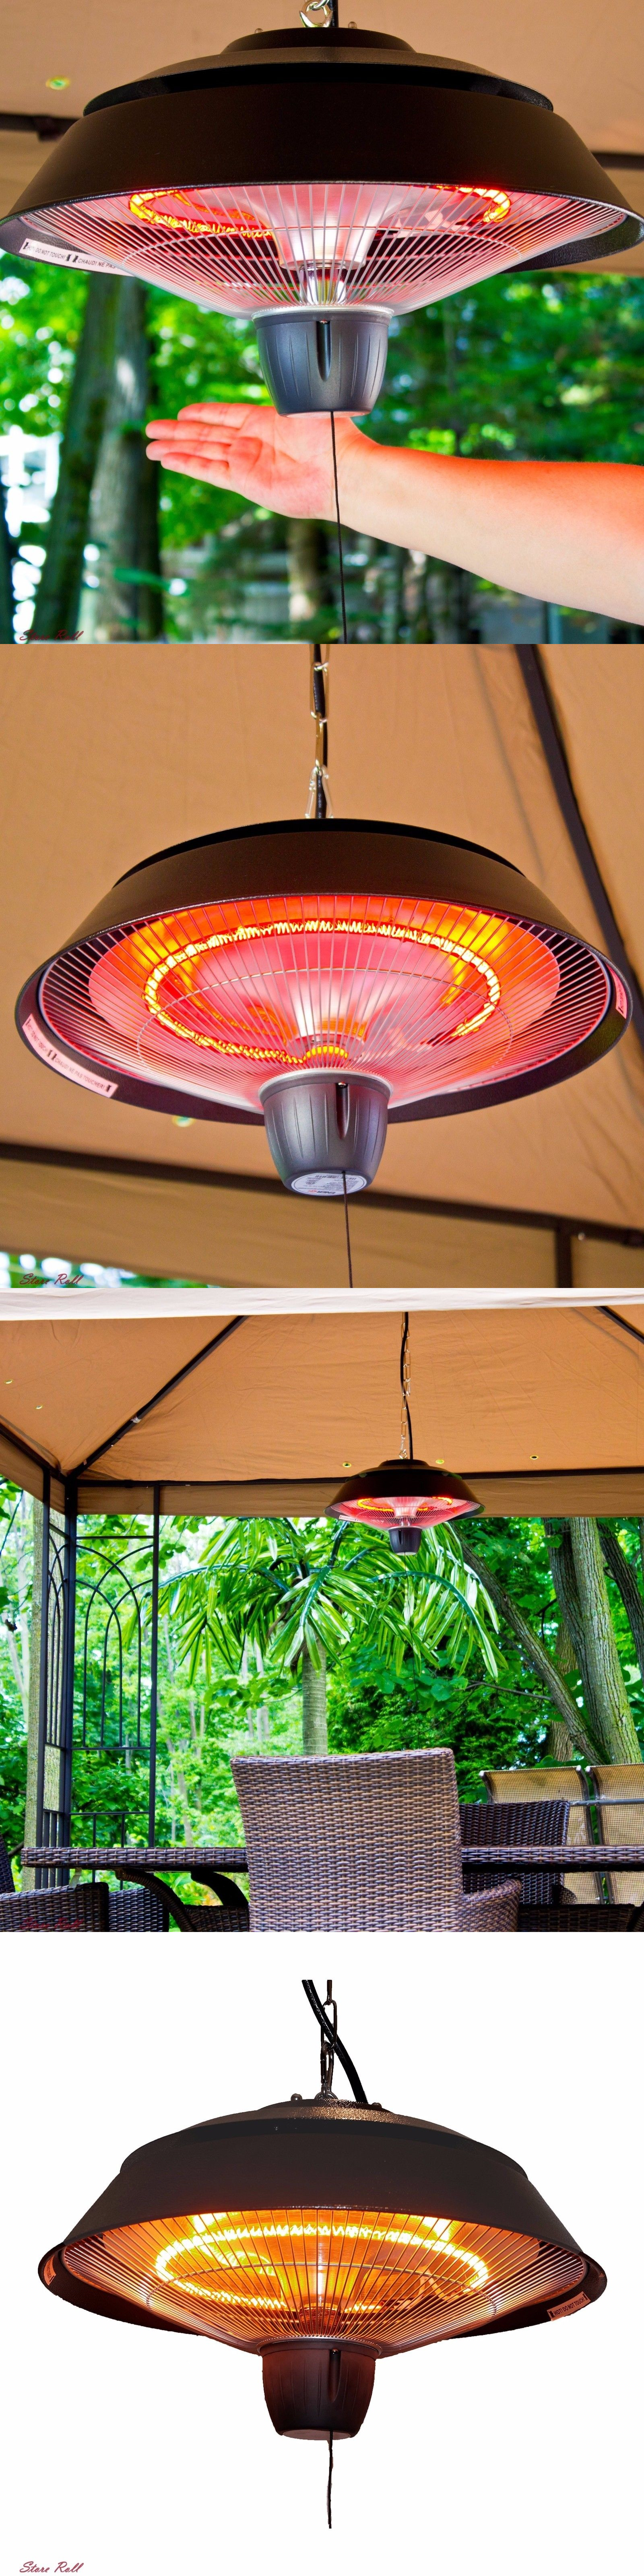 Patio Heaters Outdoor Patio Heater Infrared Electric Ceiling